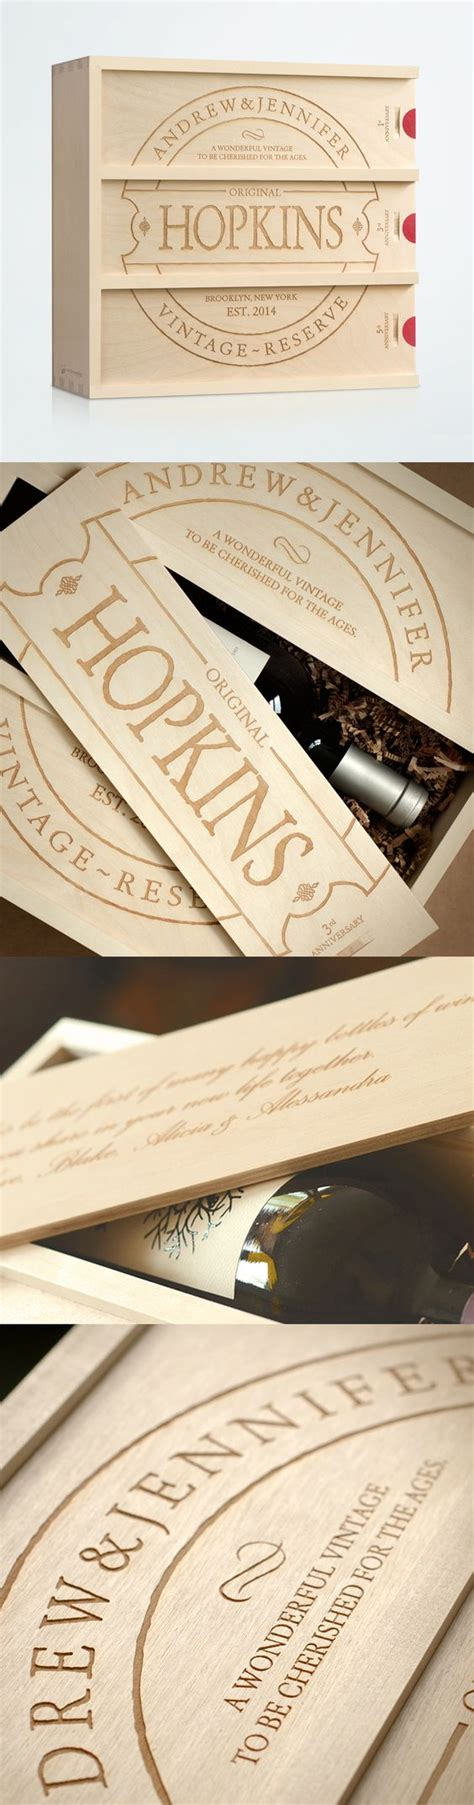 Wedding Wine Box Gift by Personalized Wine Wine Boxes And Wedding Gifts On